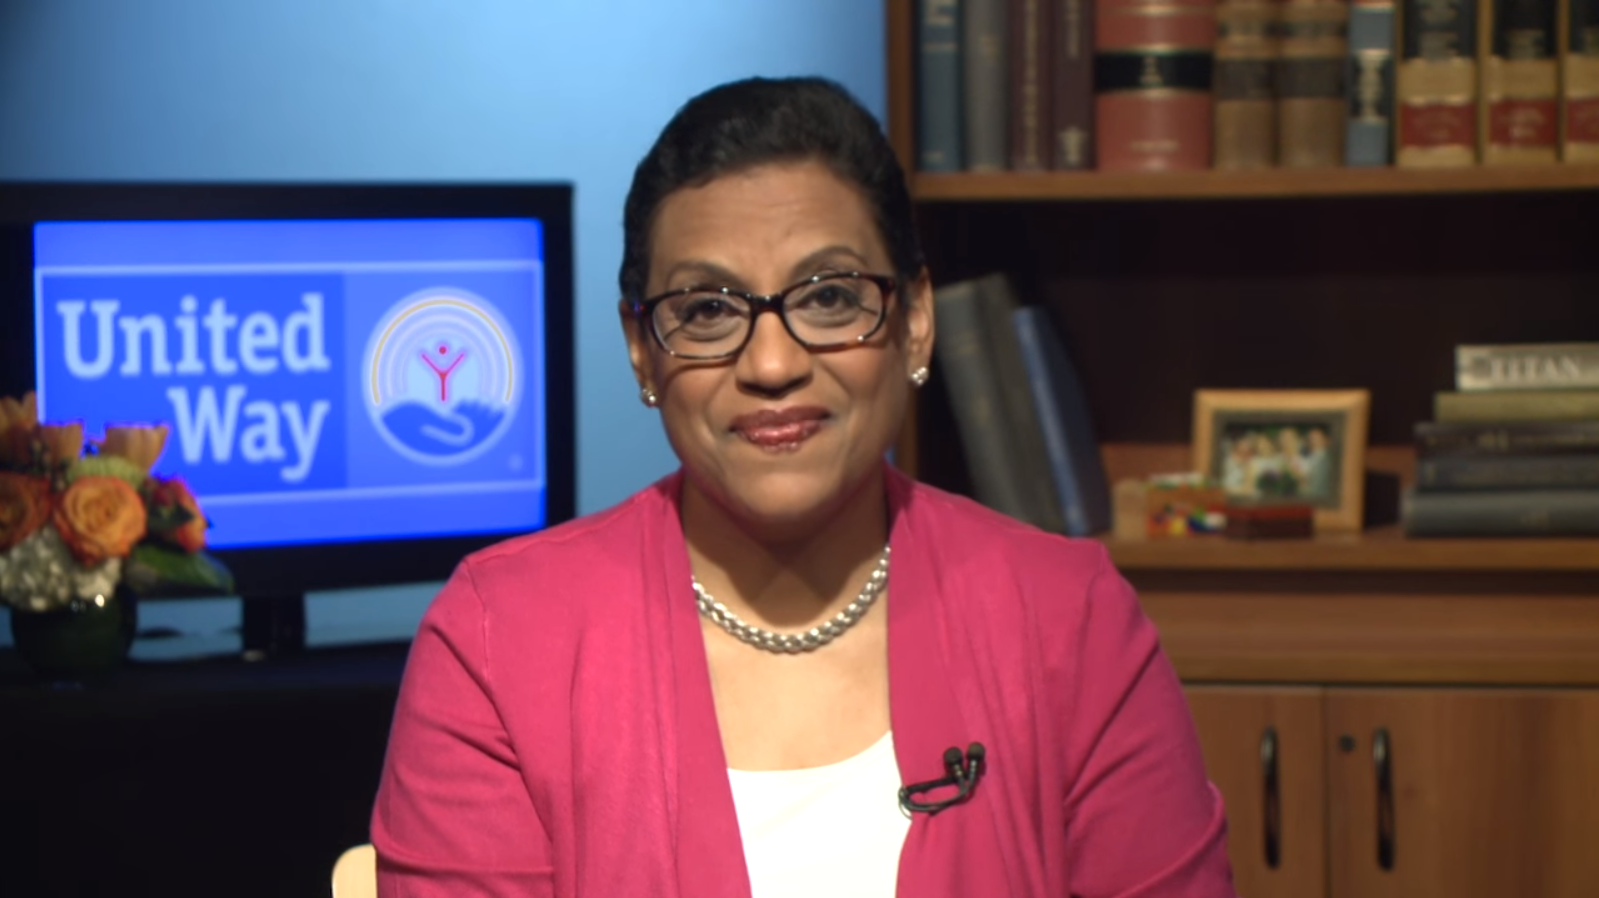 Exclusive Interview: United Way President Stacey Stewart Talks Preparations For Tax Season